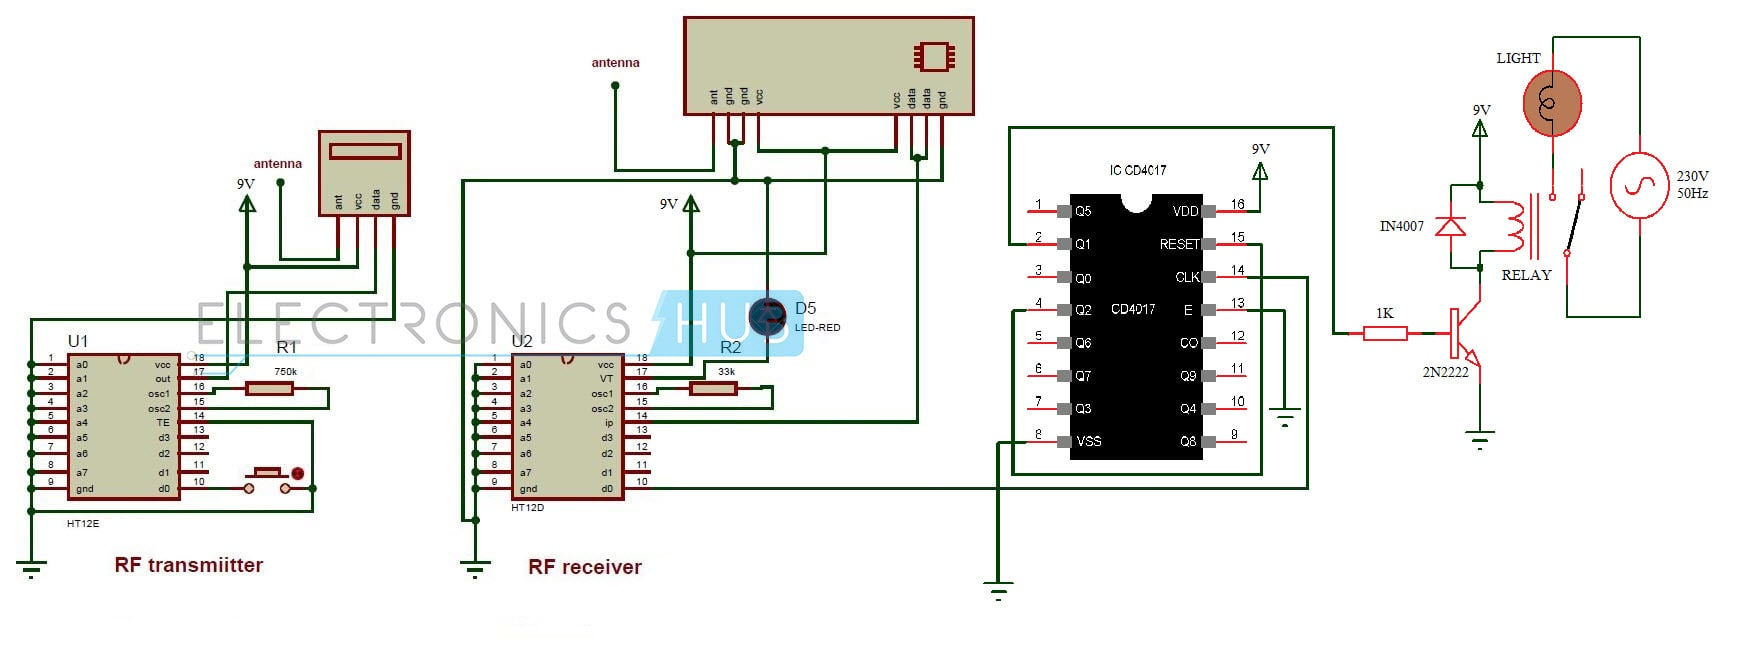 hight resolution of control regulation circuit remotecontrolcircuit circuit diagram diagram as well remote control circuit diagram furthermore rc airplane